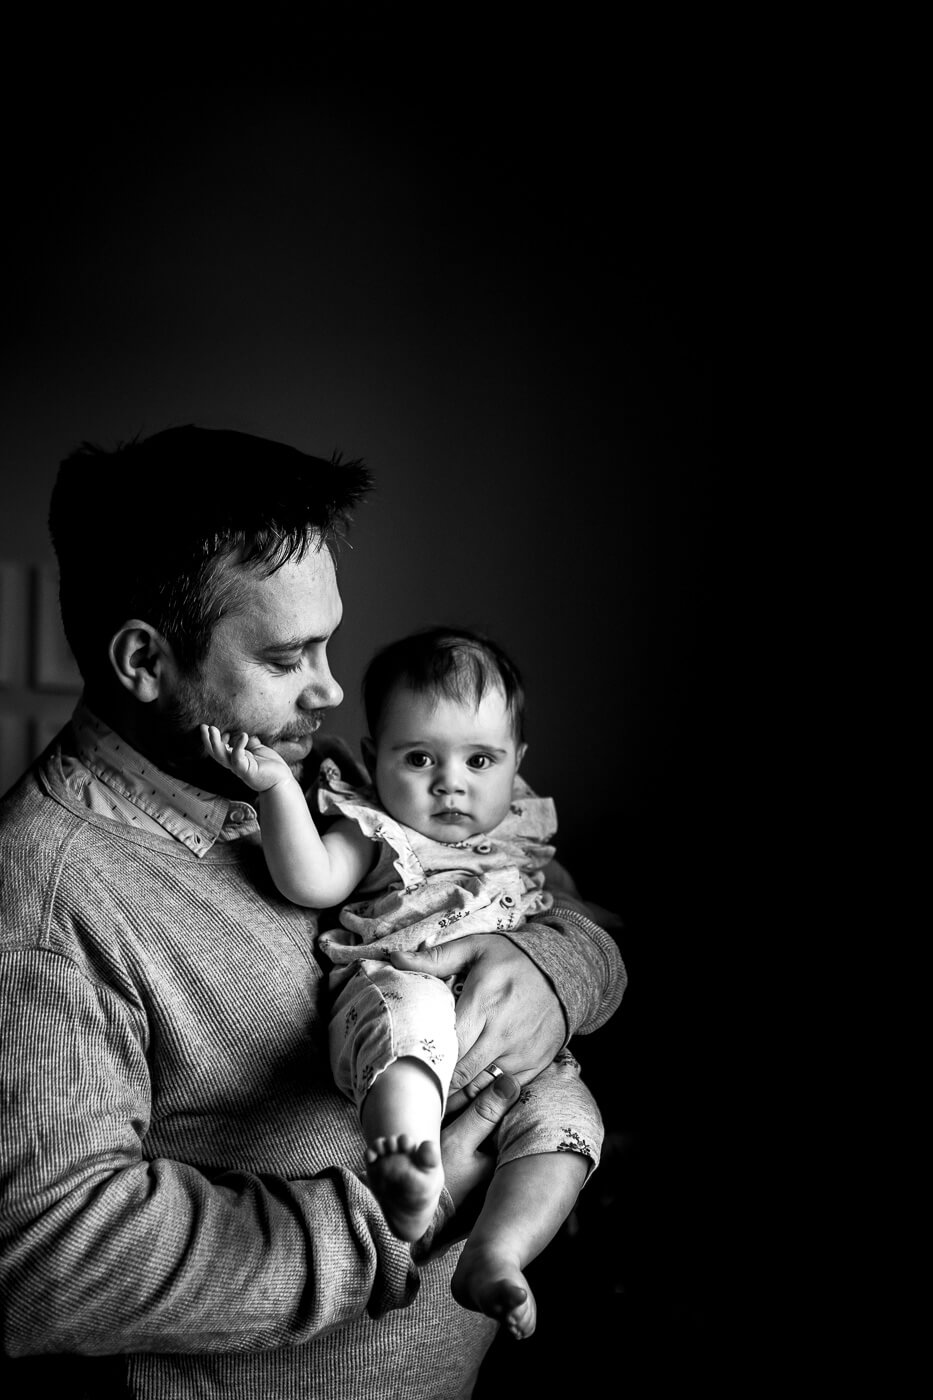 Baby girl in dad's arms with her hand on his cheek in black & white